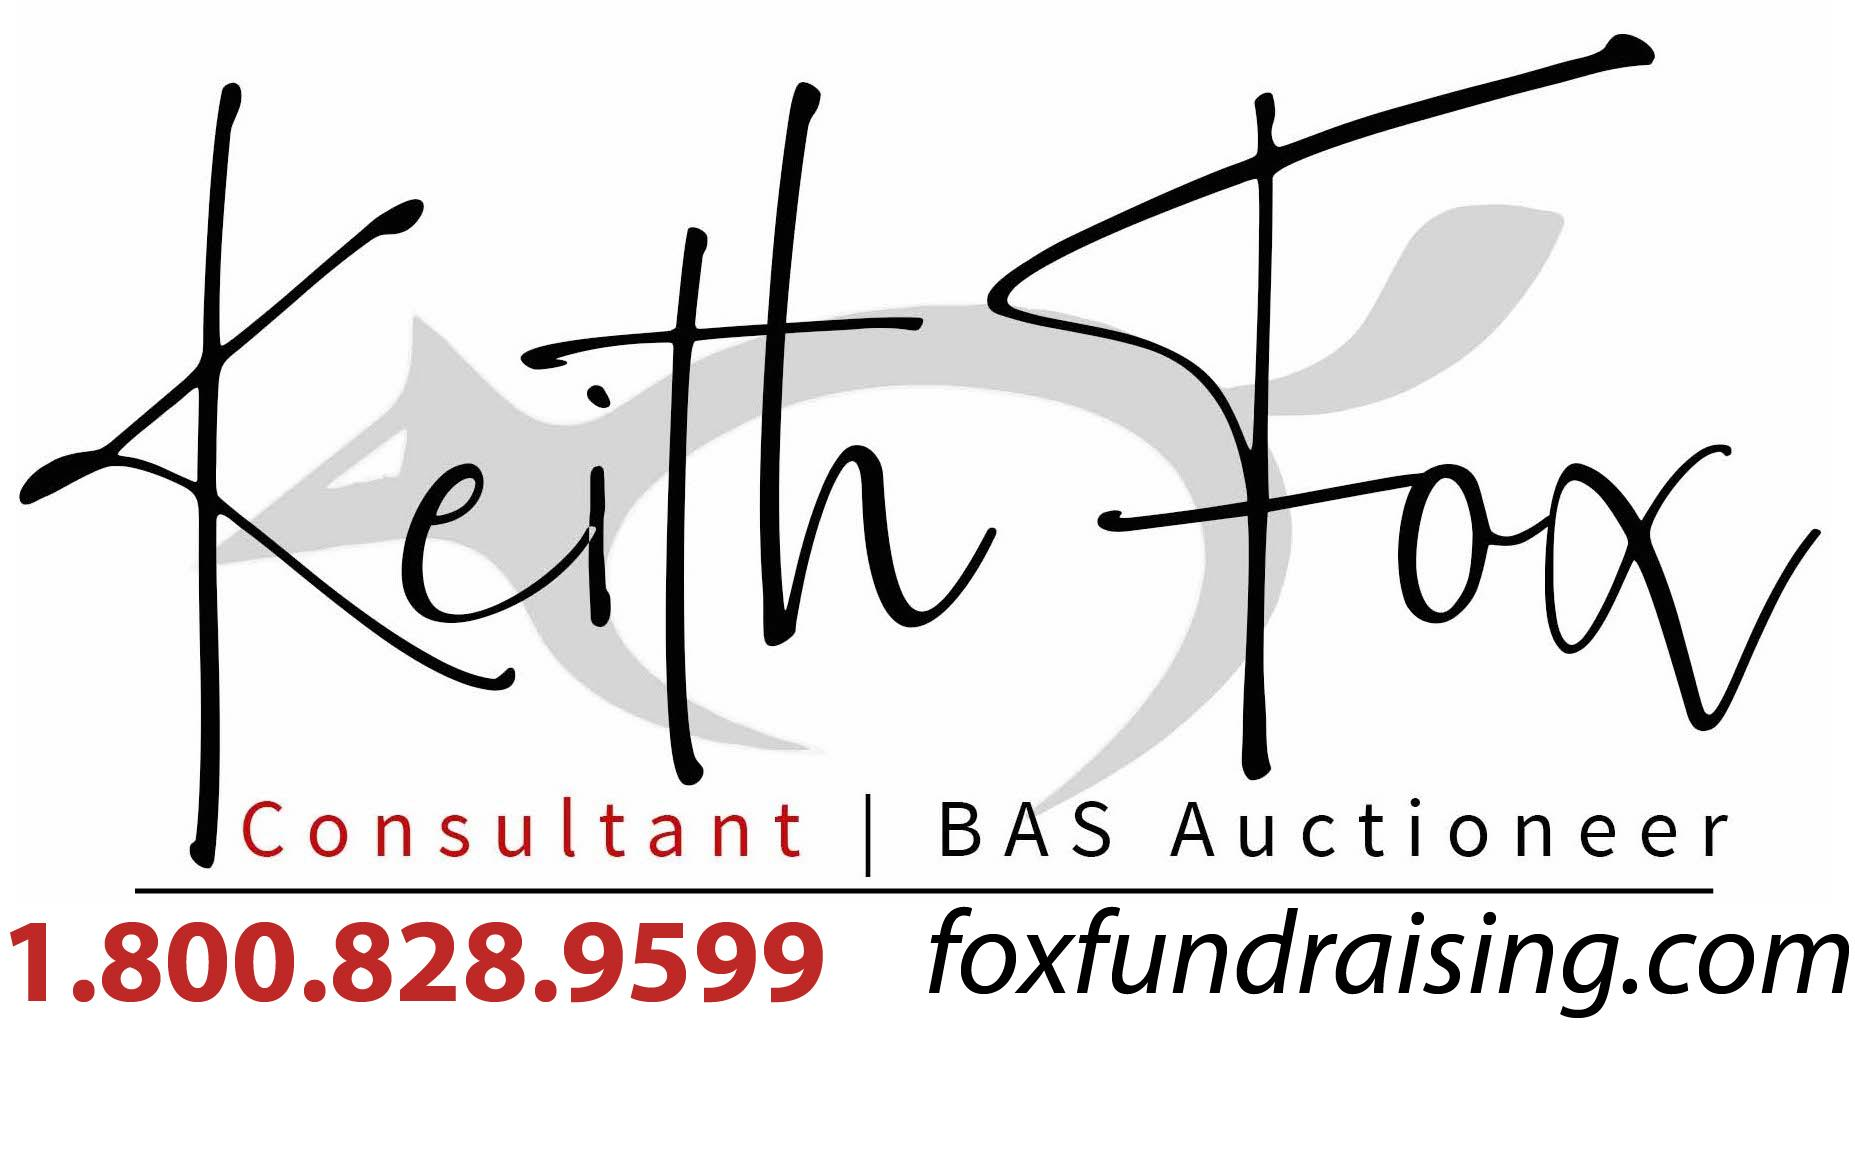 Keith Fox Fundraising